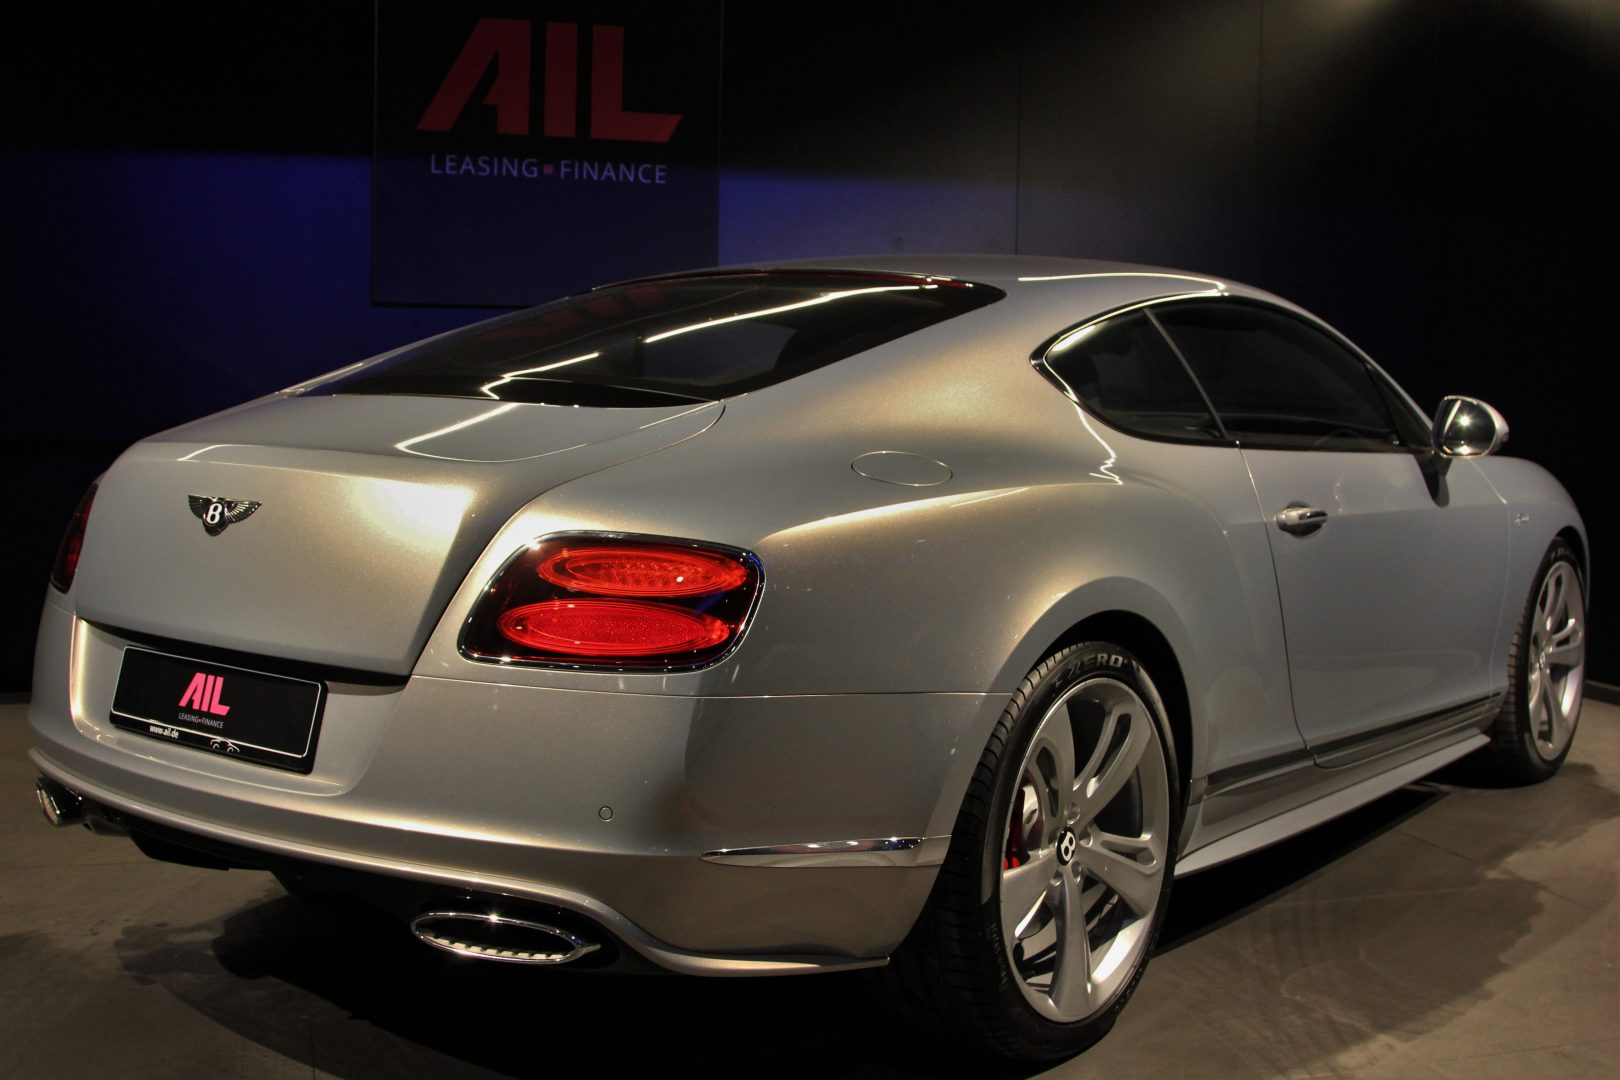 AIL Bentley Continental GT Speed 5